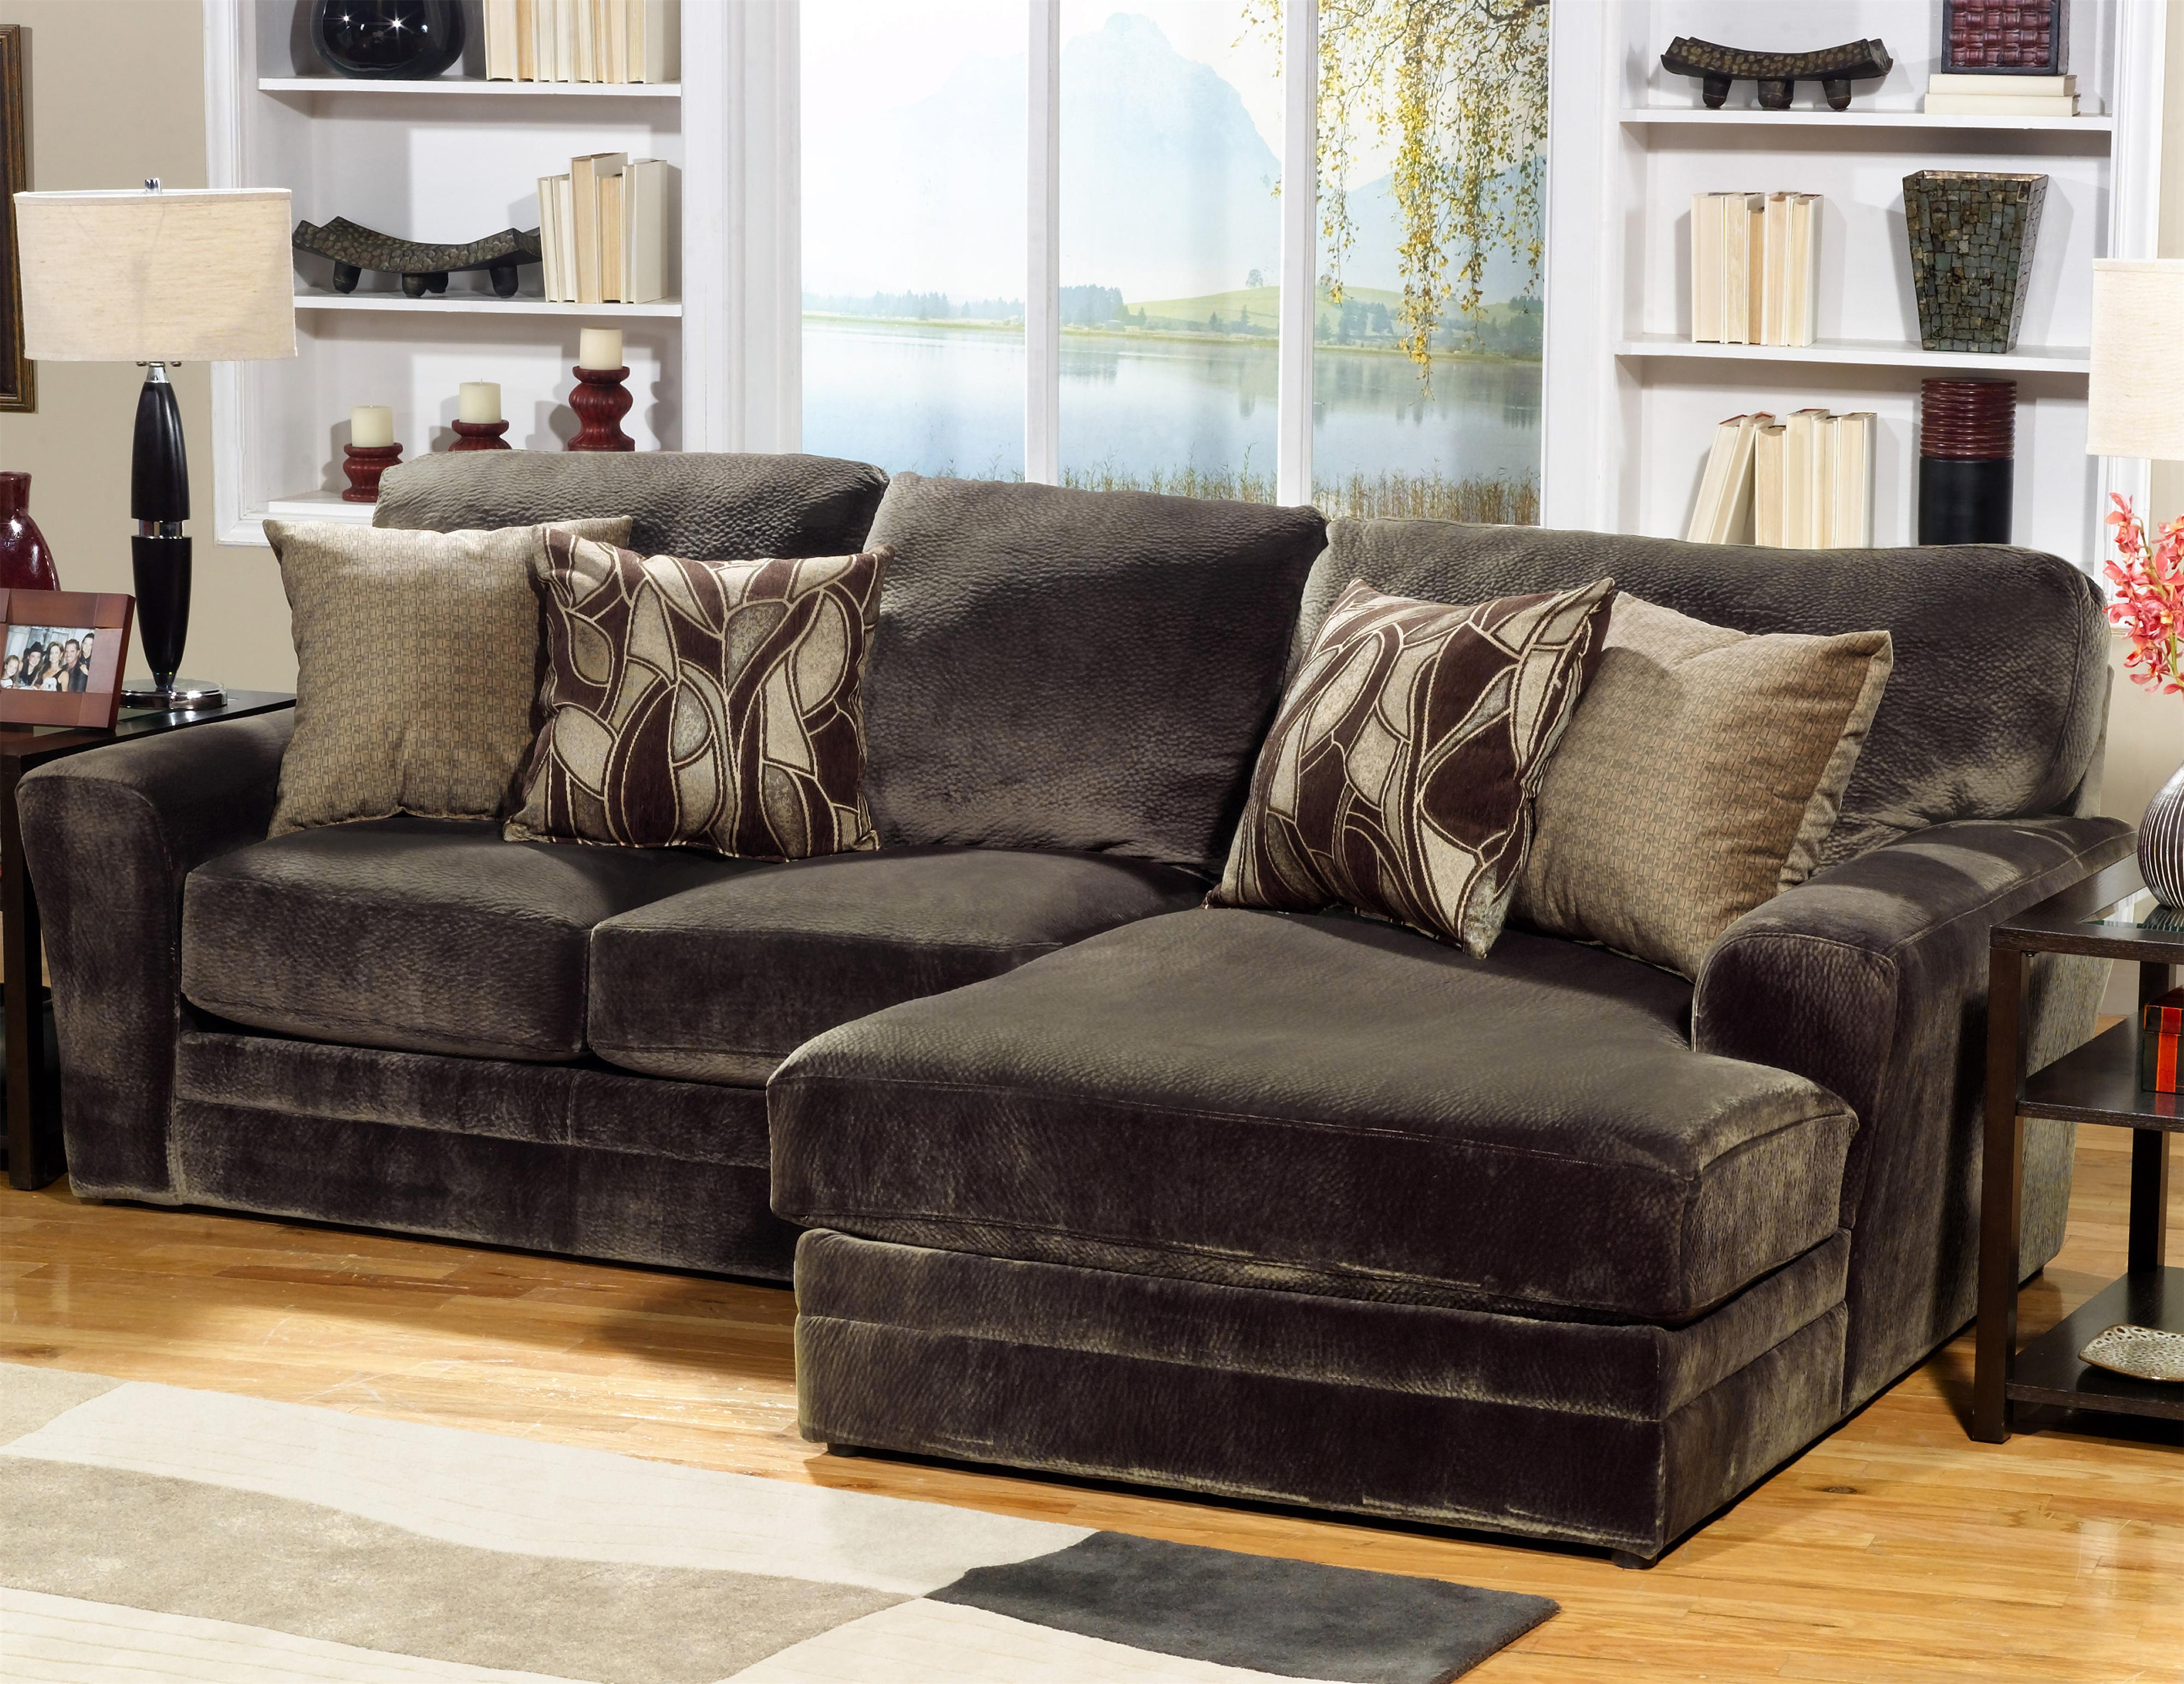 sectional sofas recliners convertible sofa with usb power ports 2 piece rsf chaise by jackson